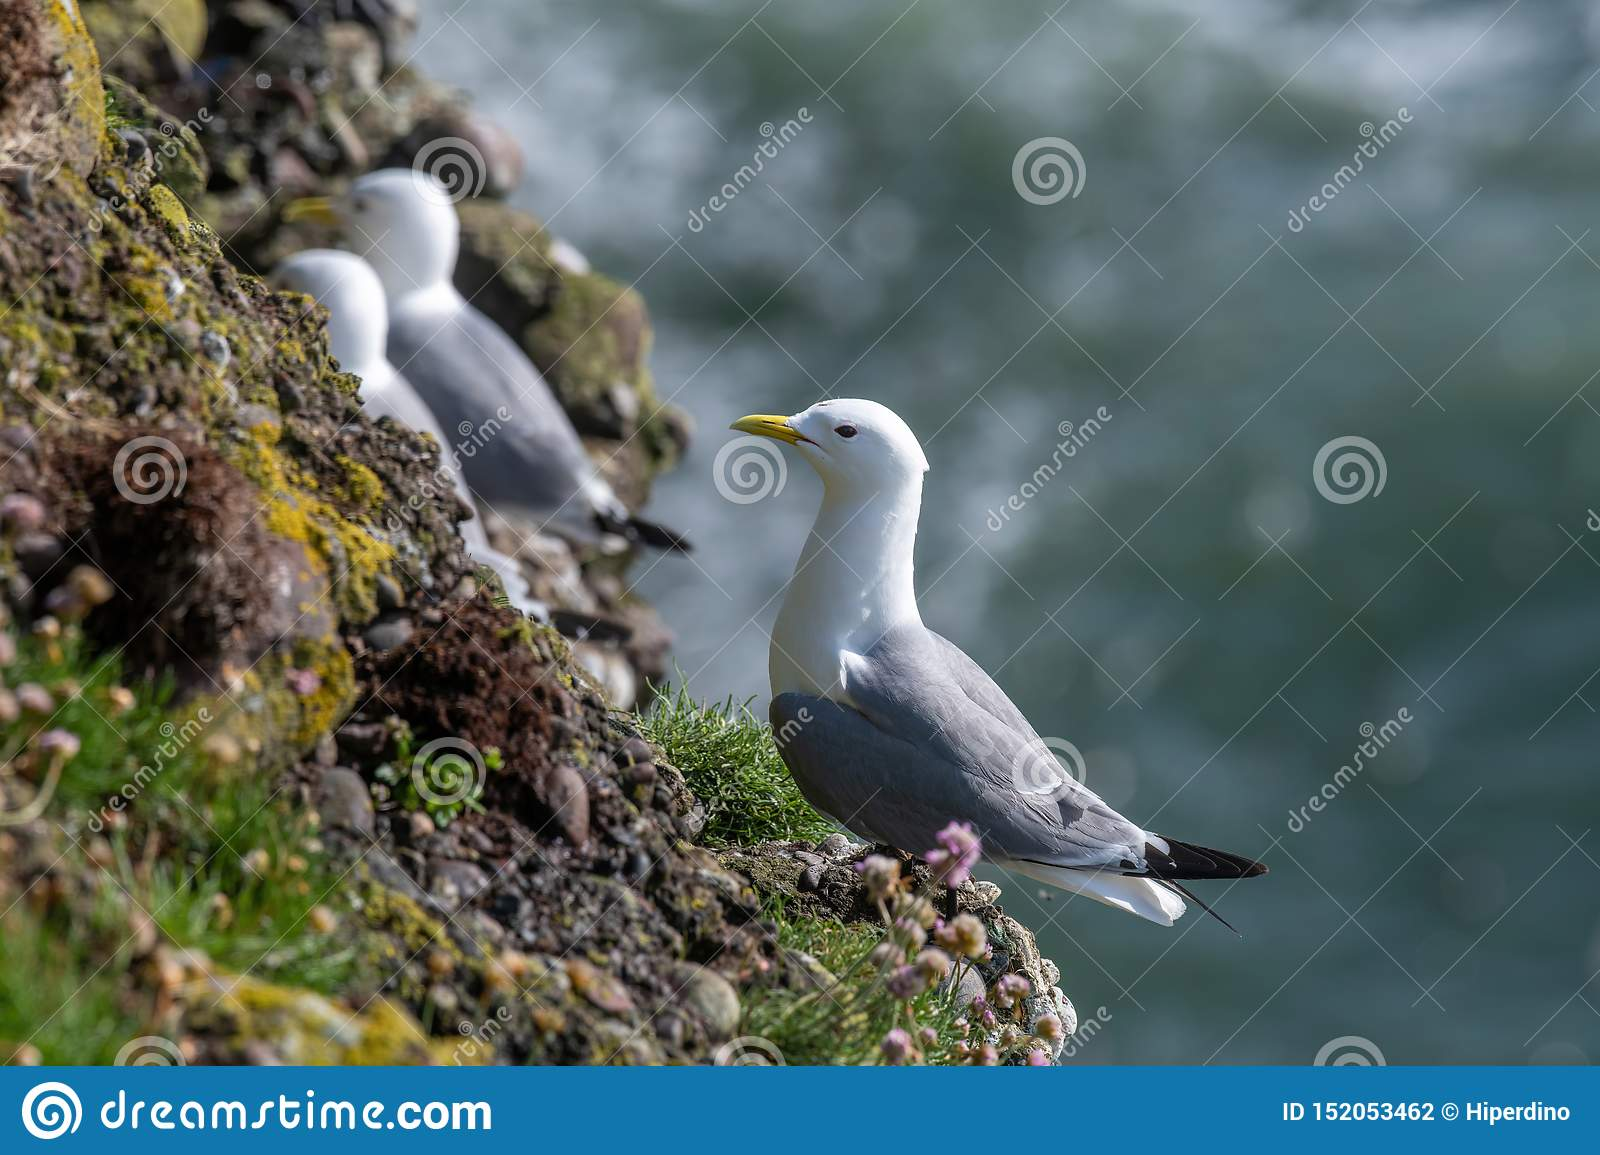 Kittiwake Rissa tridactyla on the cliffs of the Isle of May